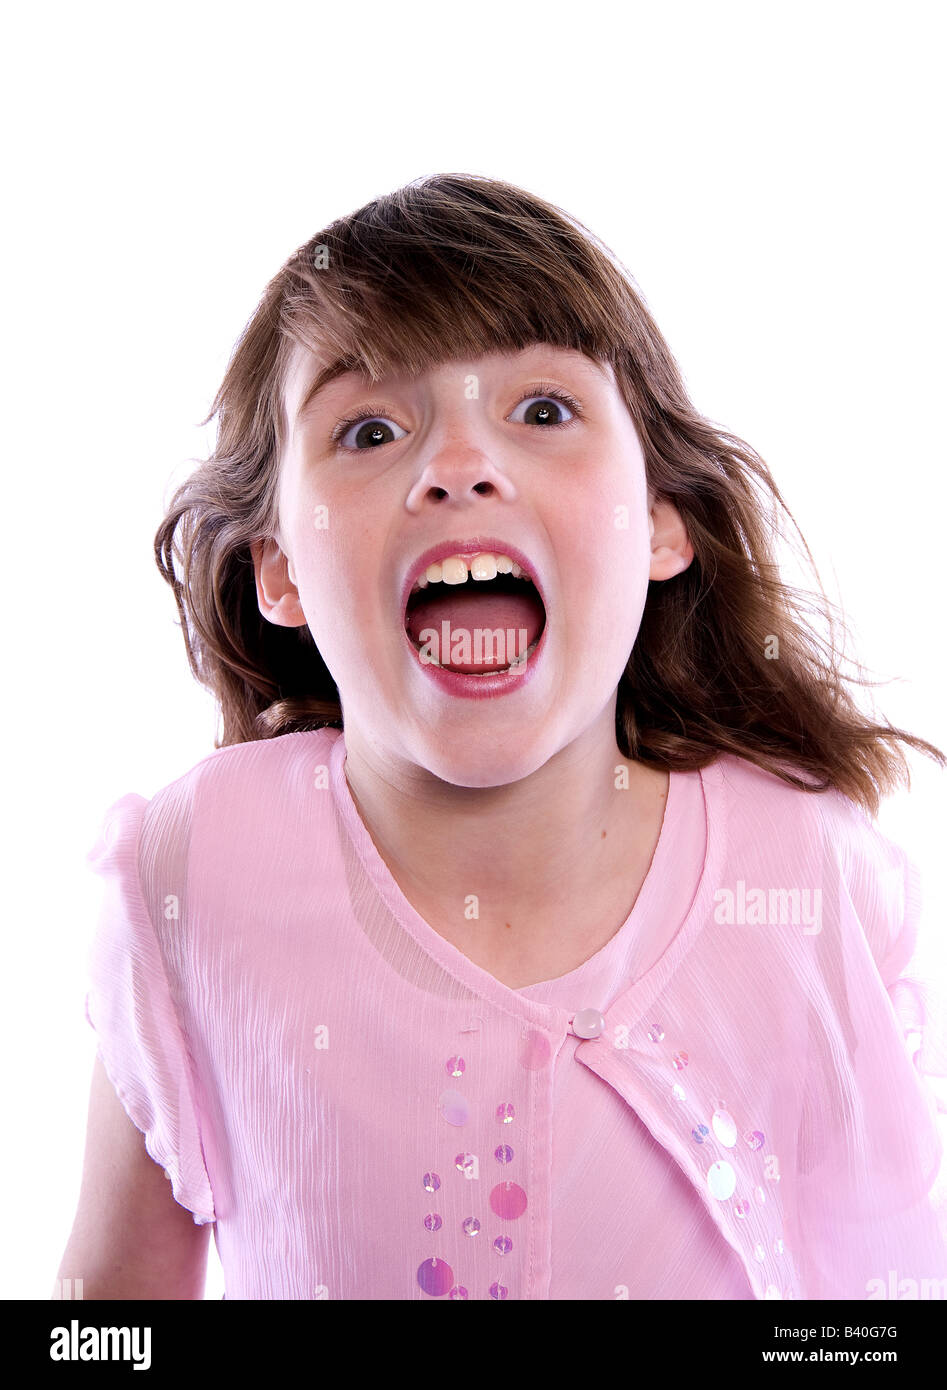 girls with mouth open ru